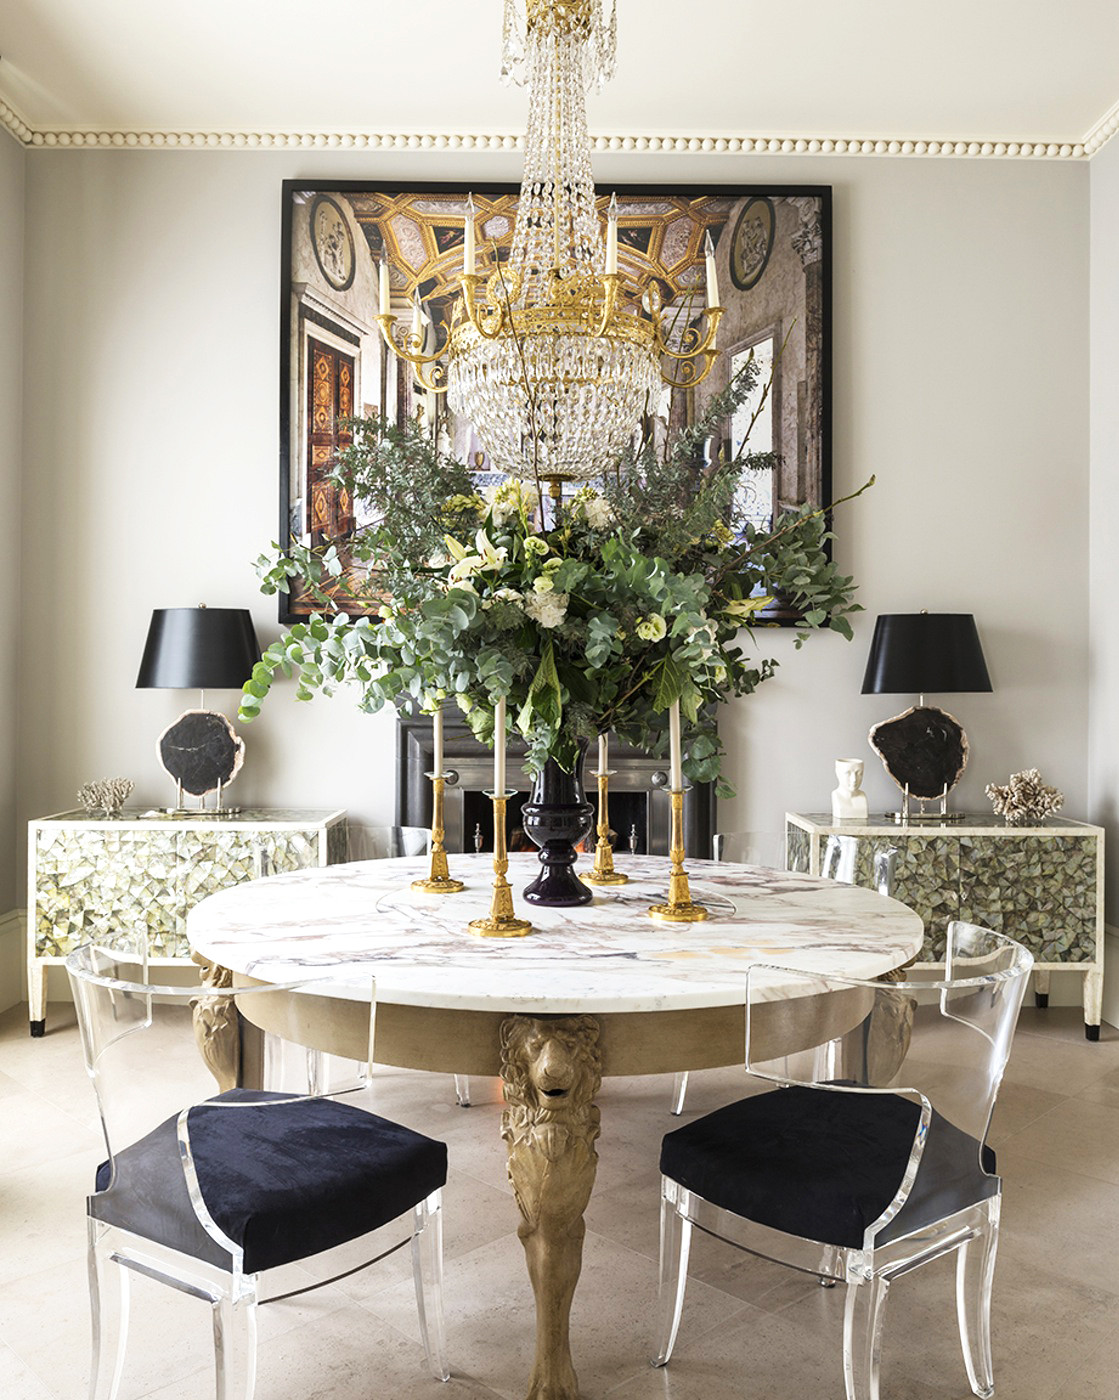 Black and Gold Dining Room Ideas Impeccable Style Get the Designer Look In Your Home with